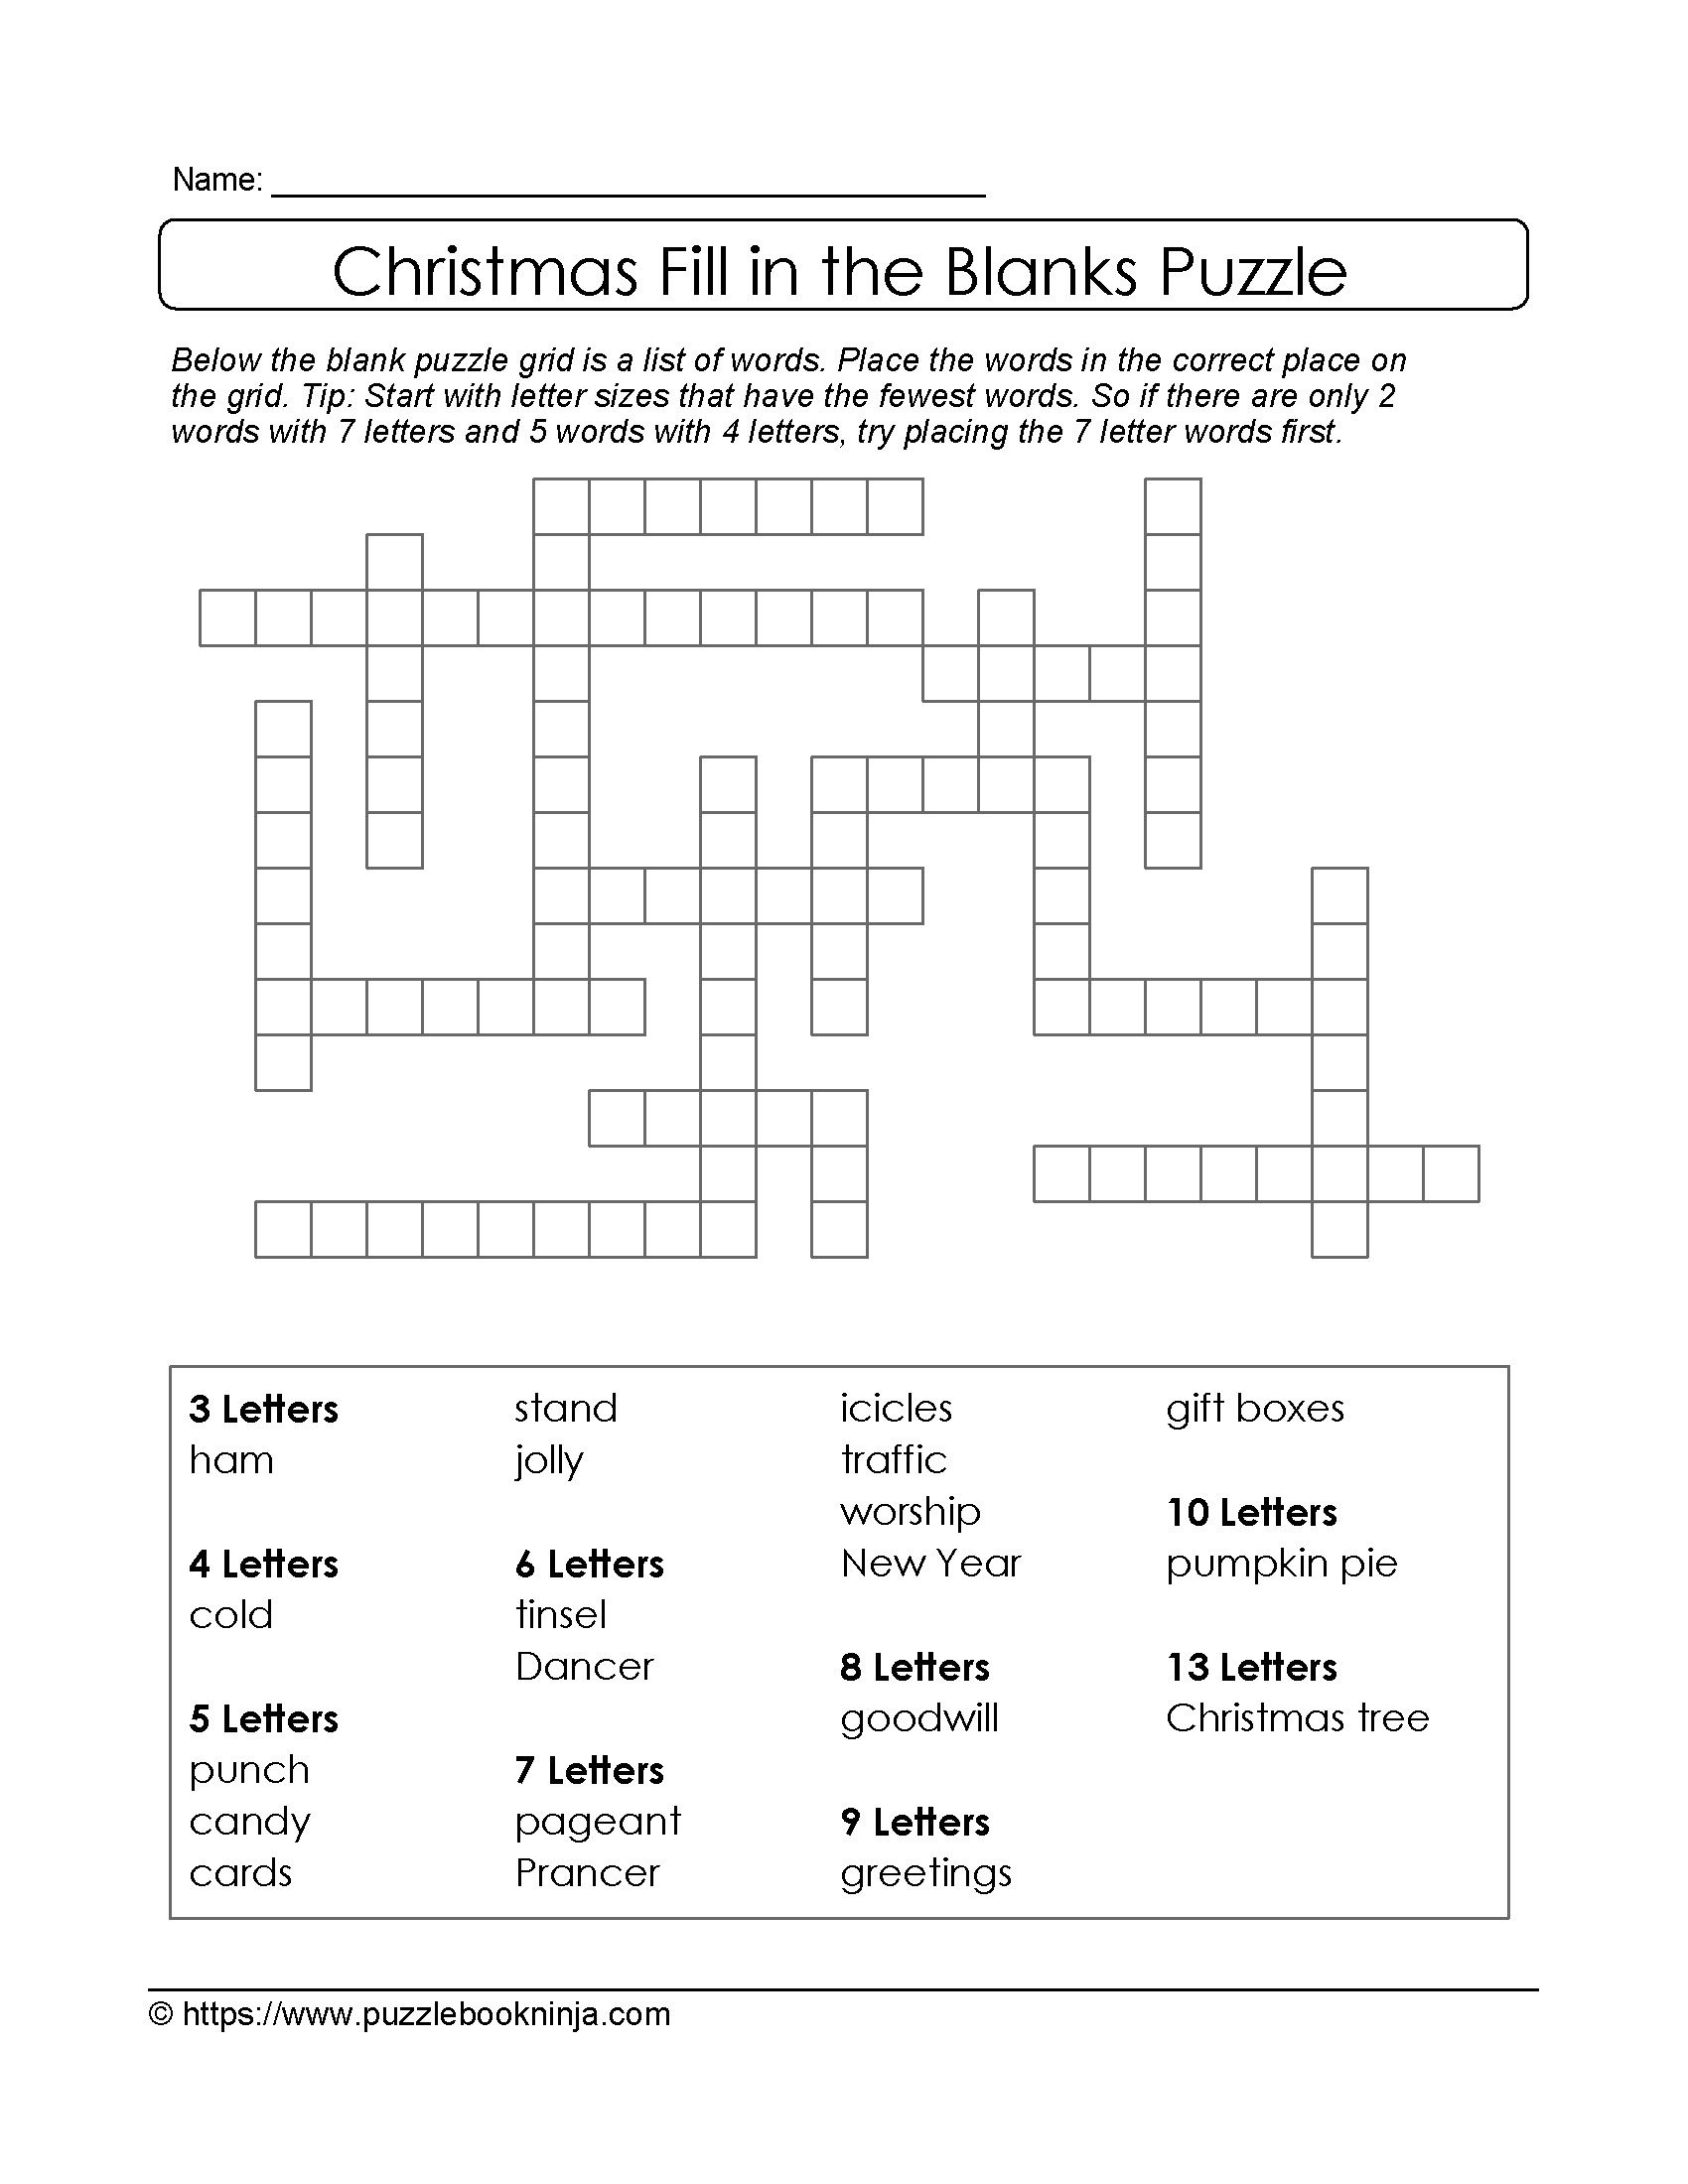 Freebie Xmas Puzzle To Print. Fill In The Blanks Crossword Like - Print Puzzle From Photo